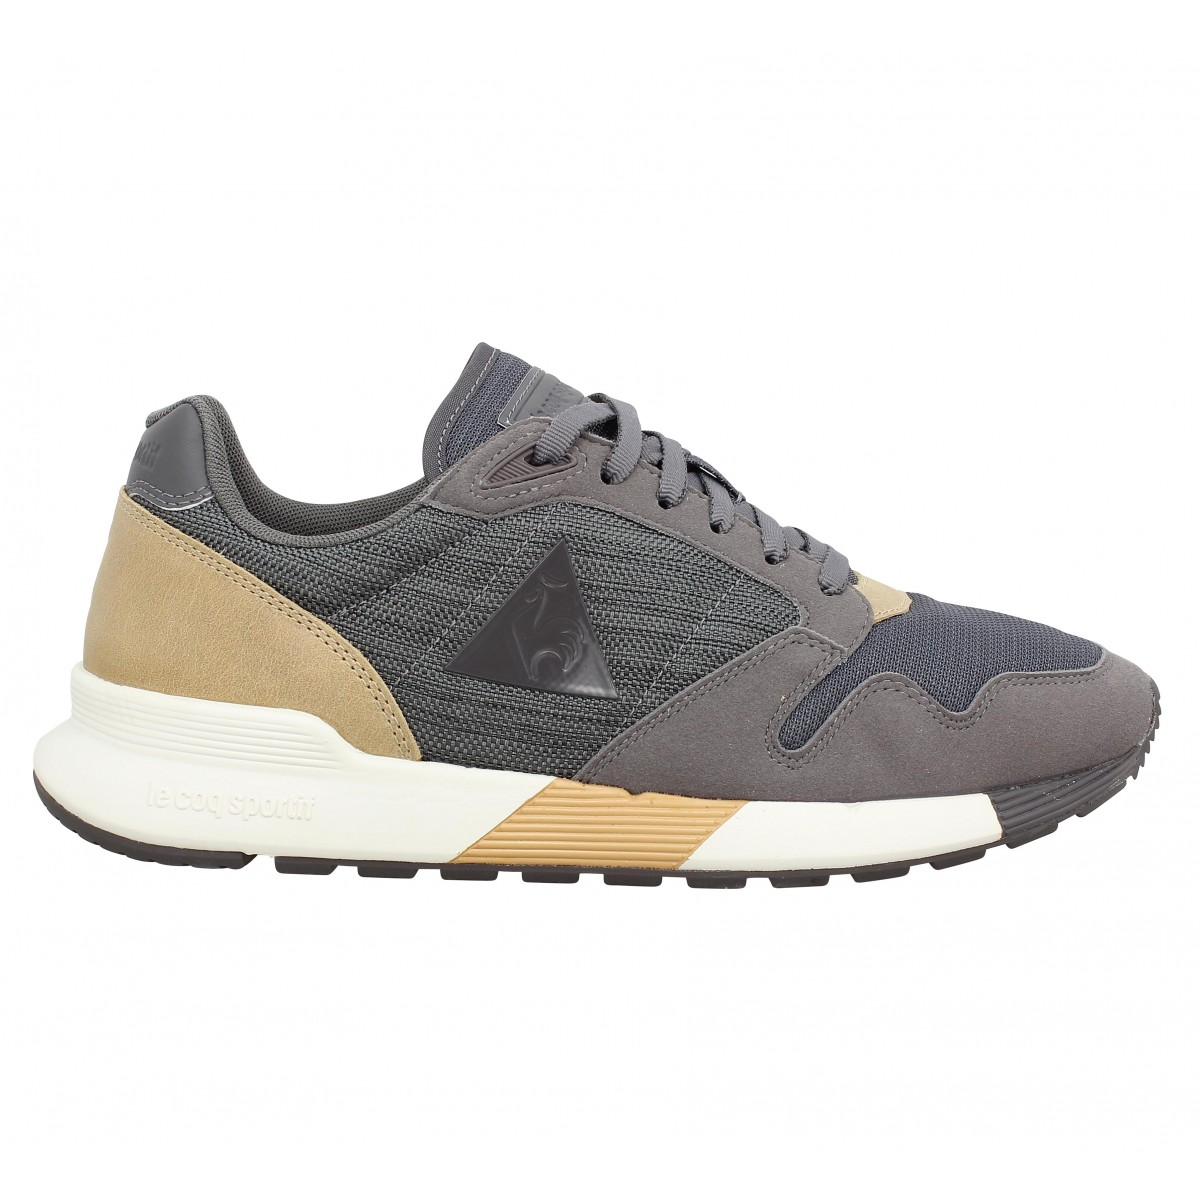 Le Coq Sportif OMEGA X CRAFT / GRIS Gris - Chaussures Chaussures-de-running Homme